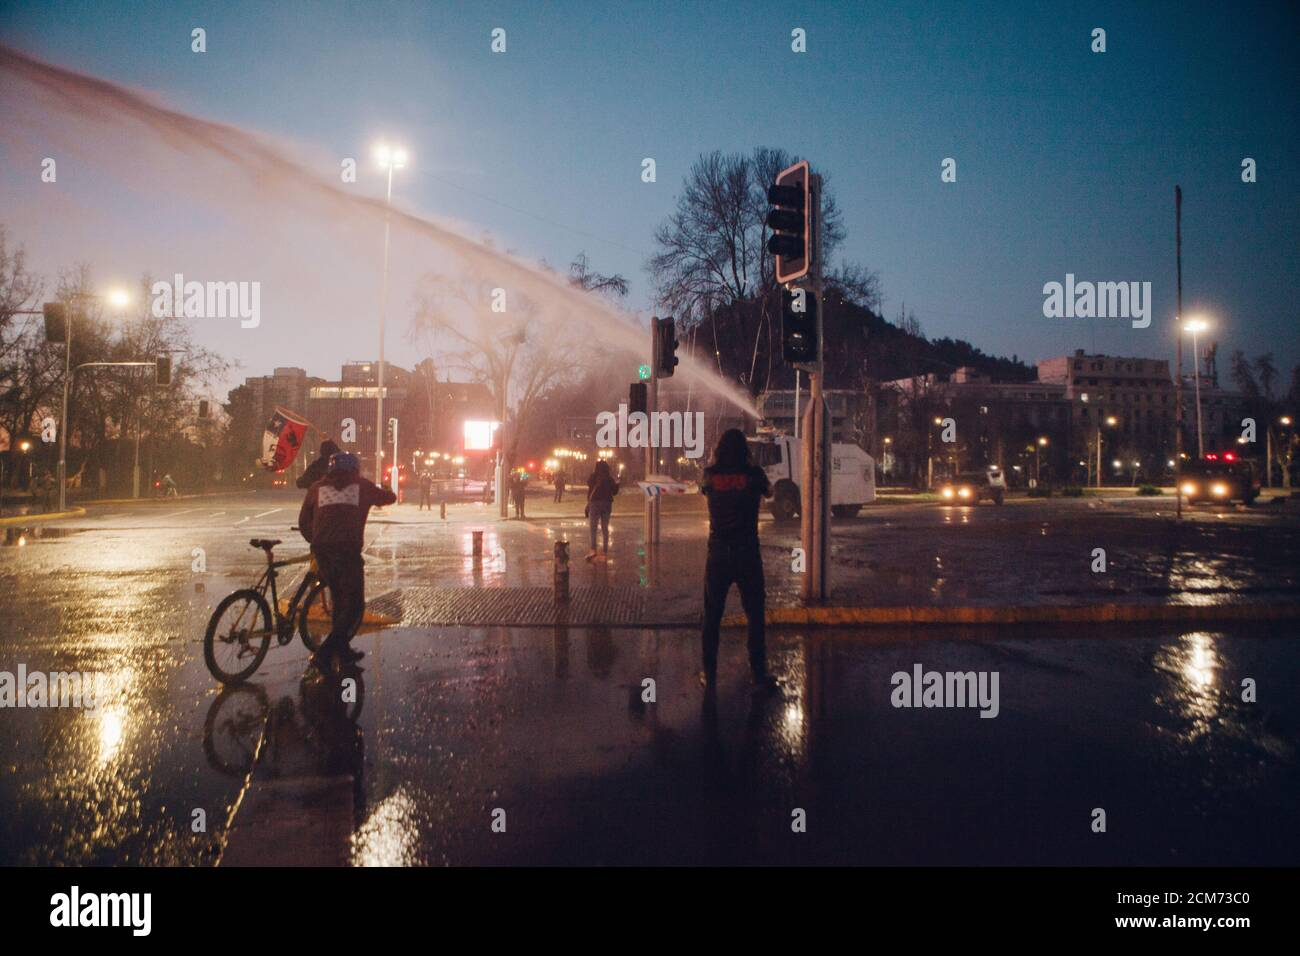 SANTIAGO, CHILE - SEPTEMBER 11, 2020 - A police water cannon disperses protesters against Sebastian Pinera's government. Hundreds of people came to th Stock Photo